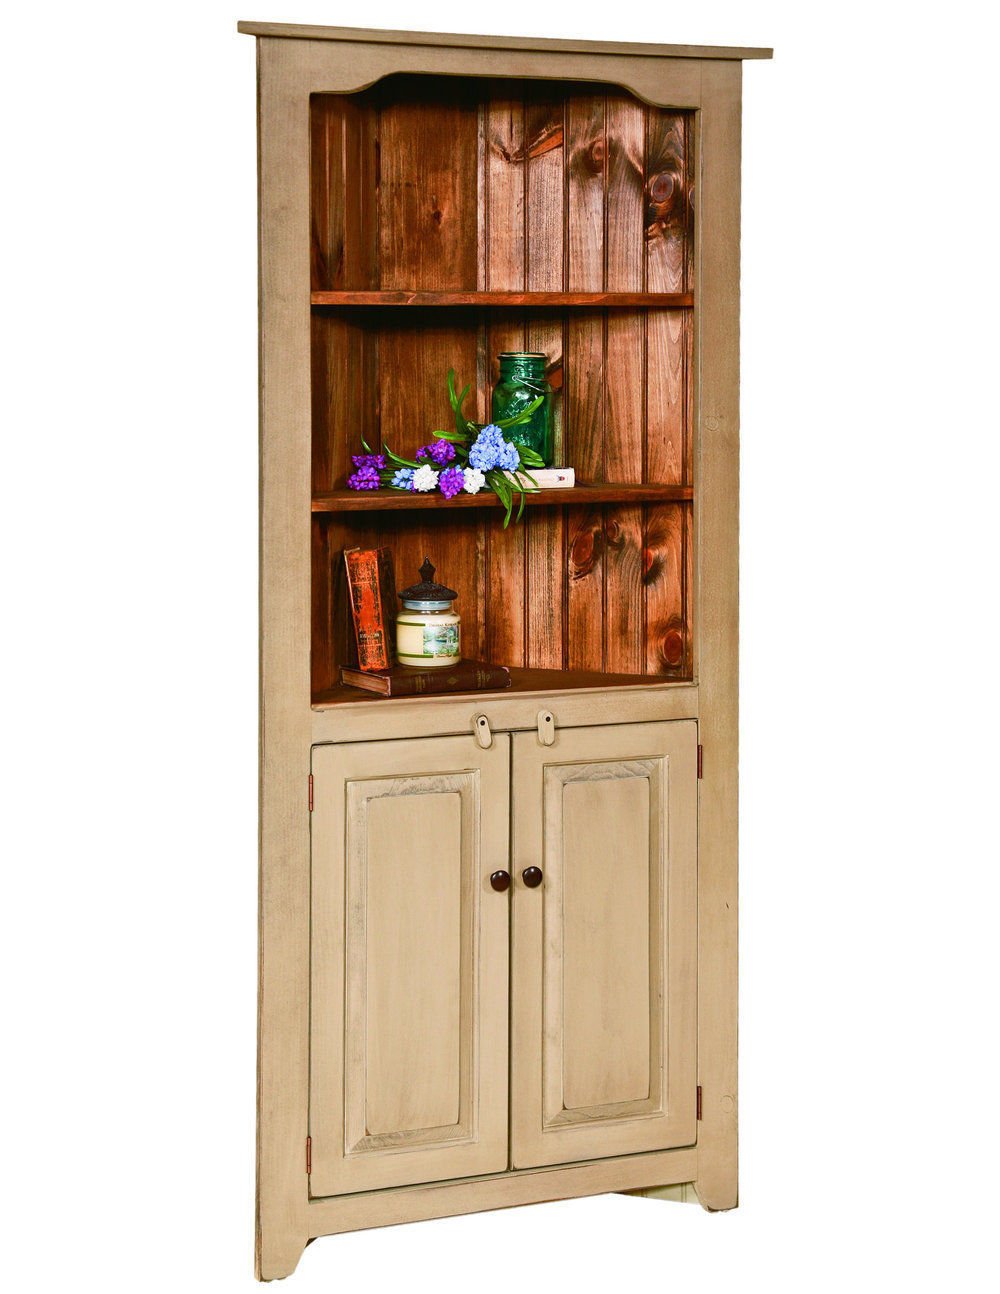 Corner china hutch kitchen cabinet country farmhouse amish for Cupboard cabinet